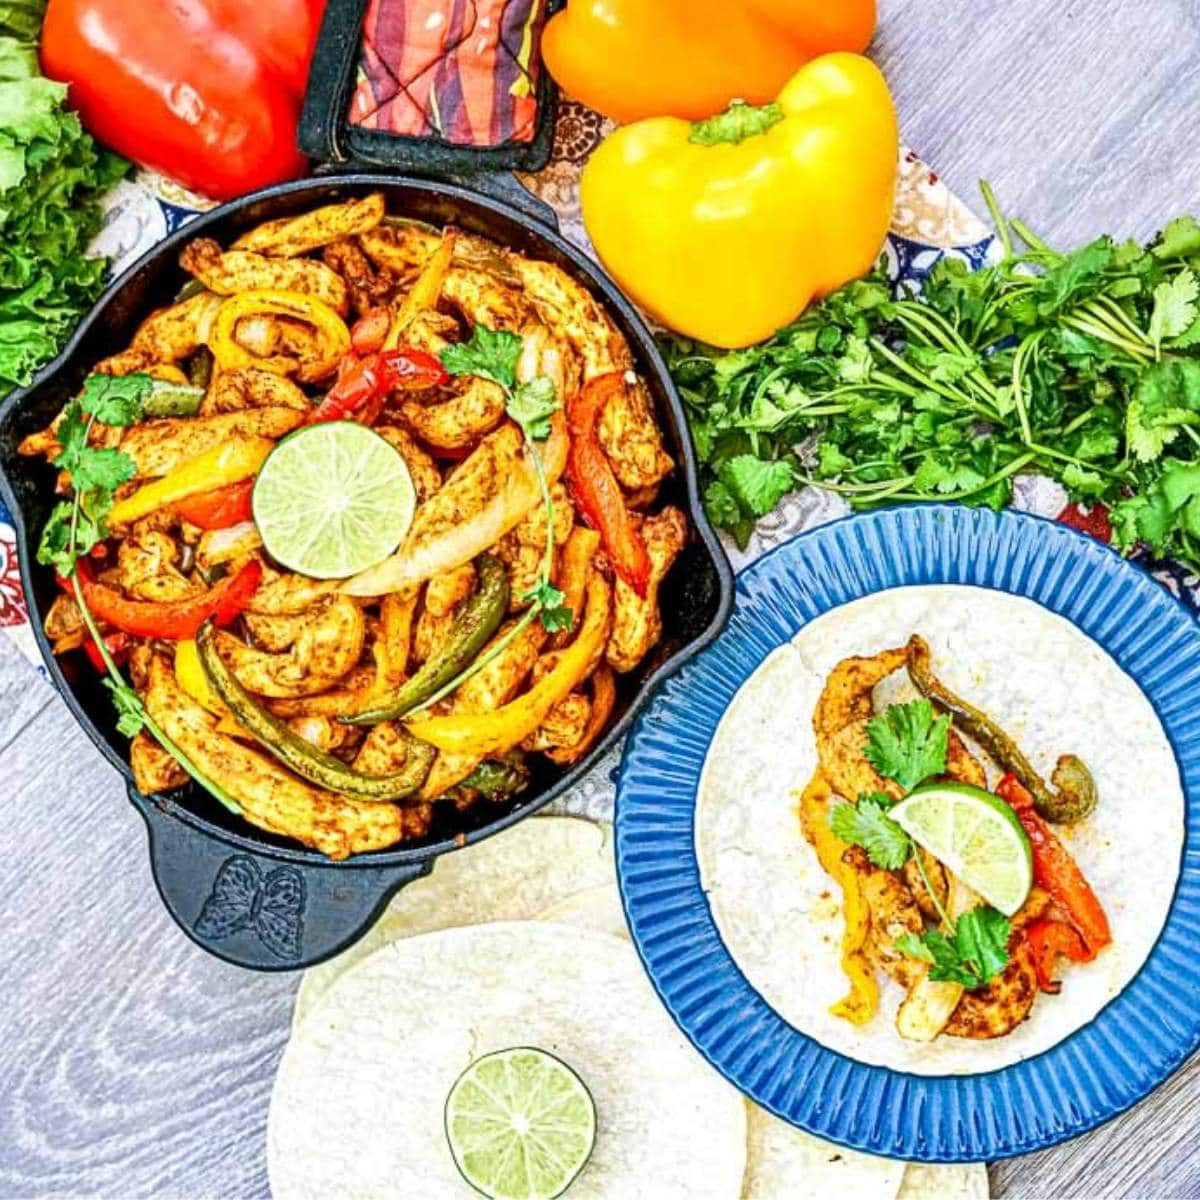 air fryer chicken fajitas next to plate with tortilla being made